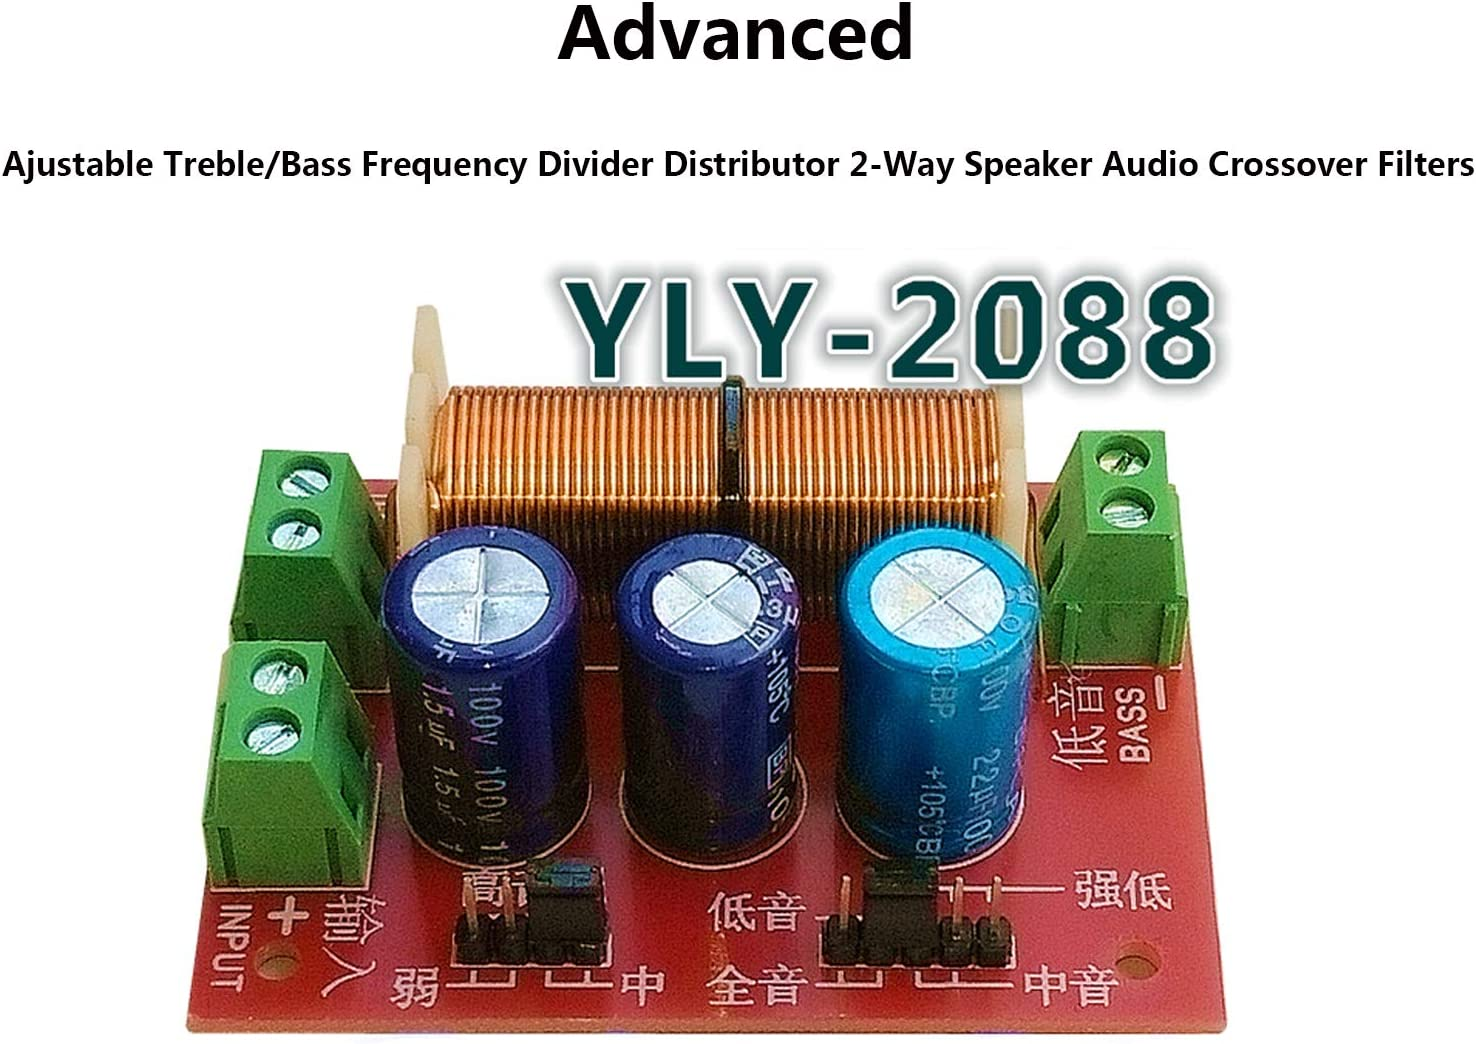 400W Ajustable Treble//Bass Frequency Divider Distributor 2-Way Speaker Audio Crossover Filters with Wire Block